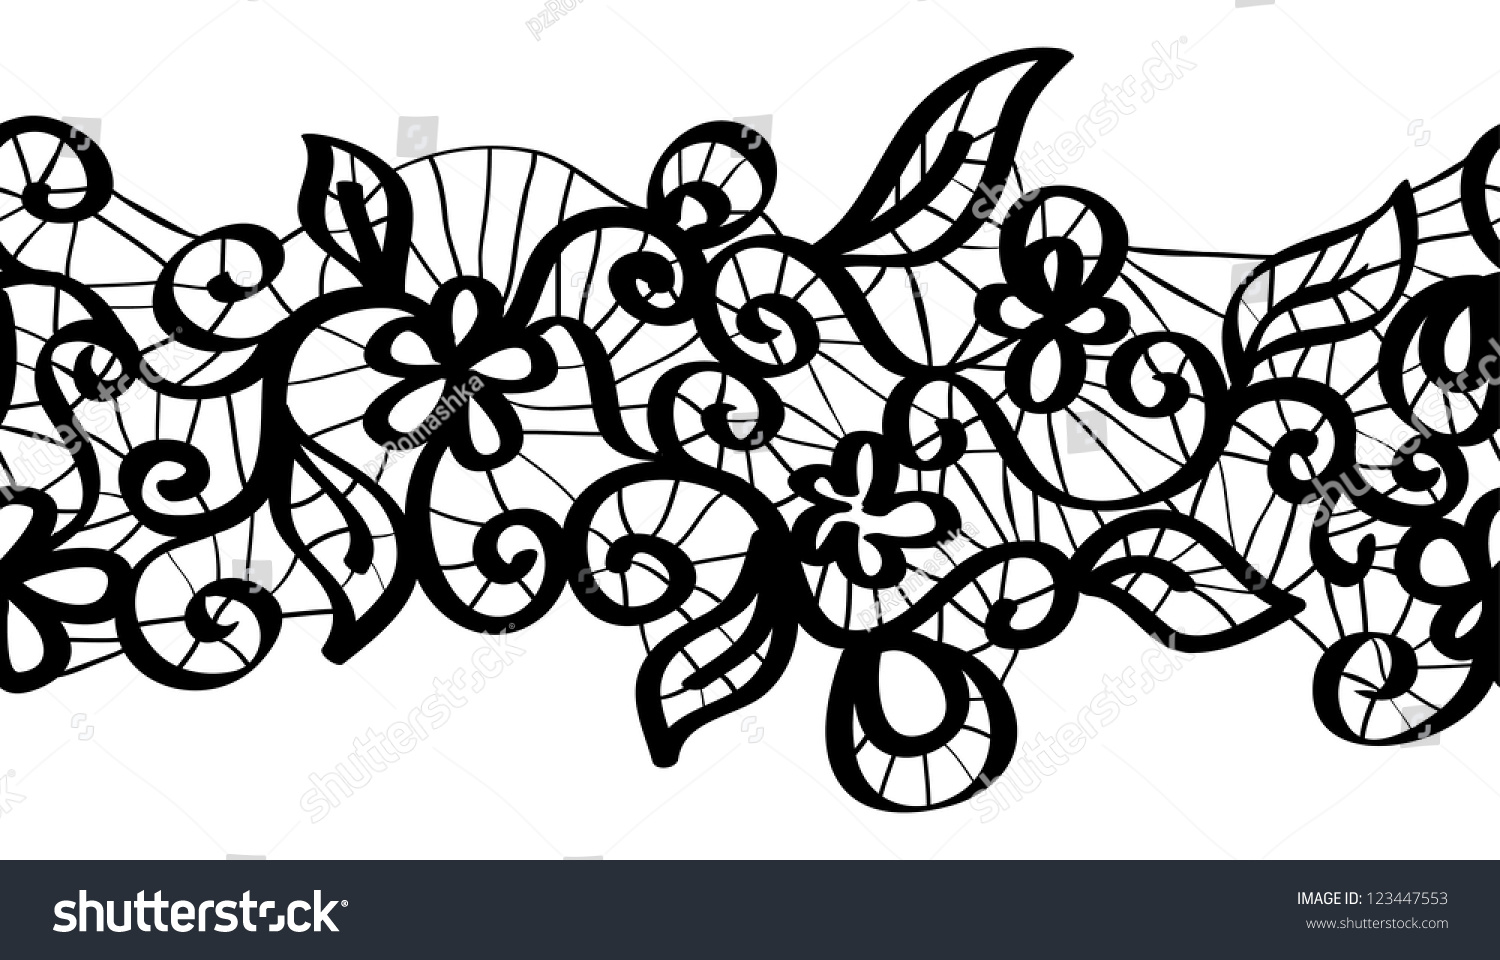 Simple lace patterns clipart - photo#22